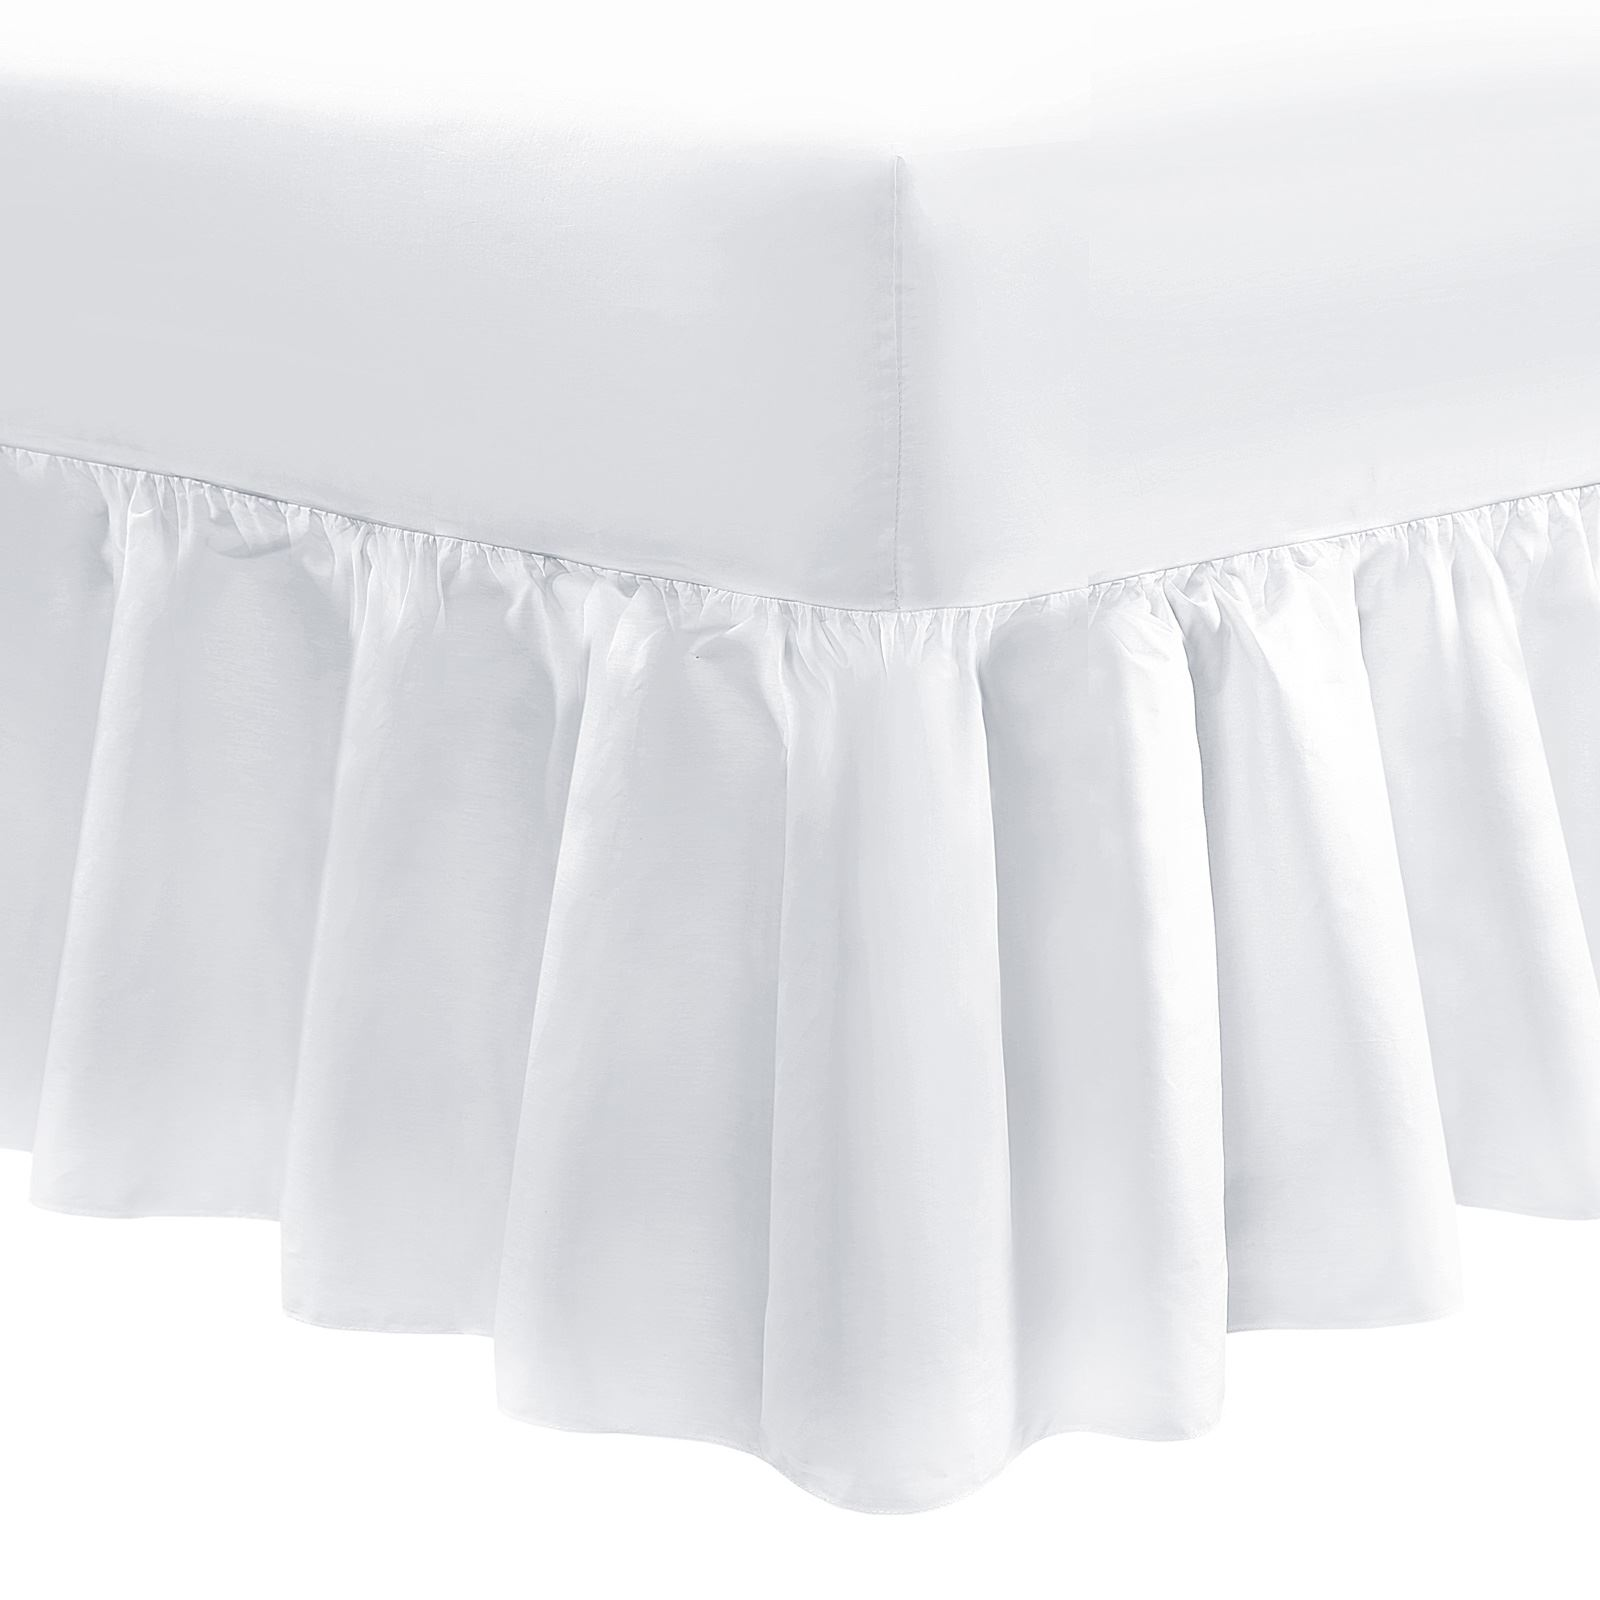 EXTRA DEEP 10 INCH 16 INCH FRILLED VALANCE FITTED SHEET KING FREE POST